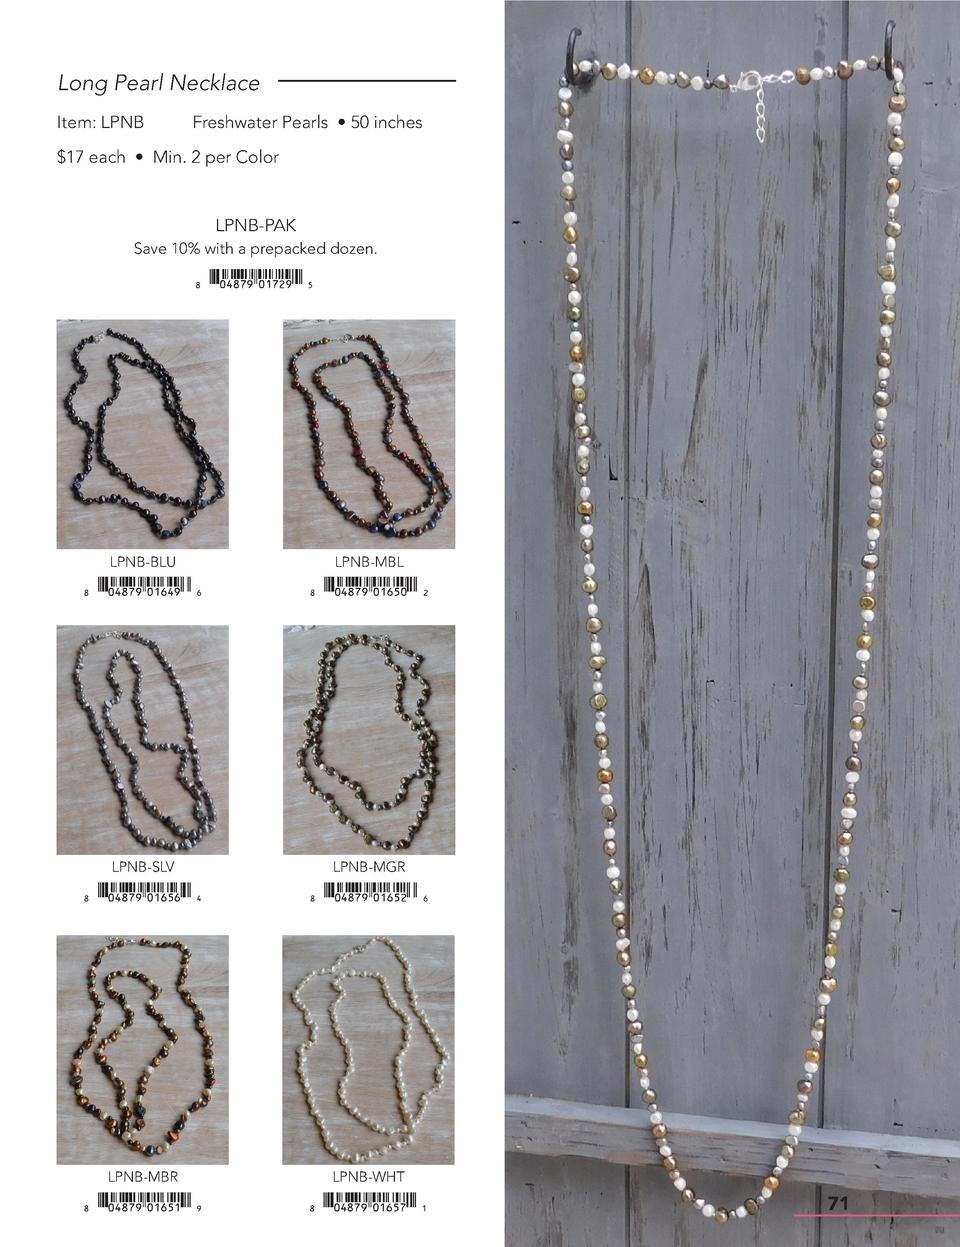 Long Pearl Necklace Item  LPNB  Freshwater Pearls     50 inches   17 each     Min. 2 per Color  LPNB-PAK Save 10  with a p...